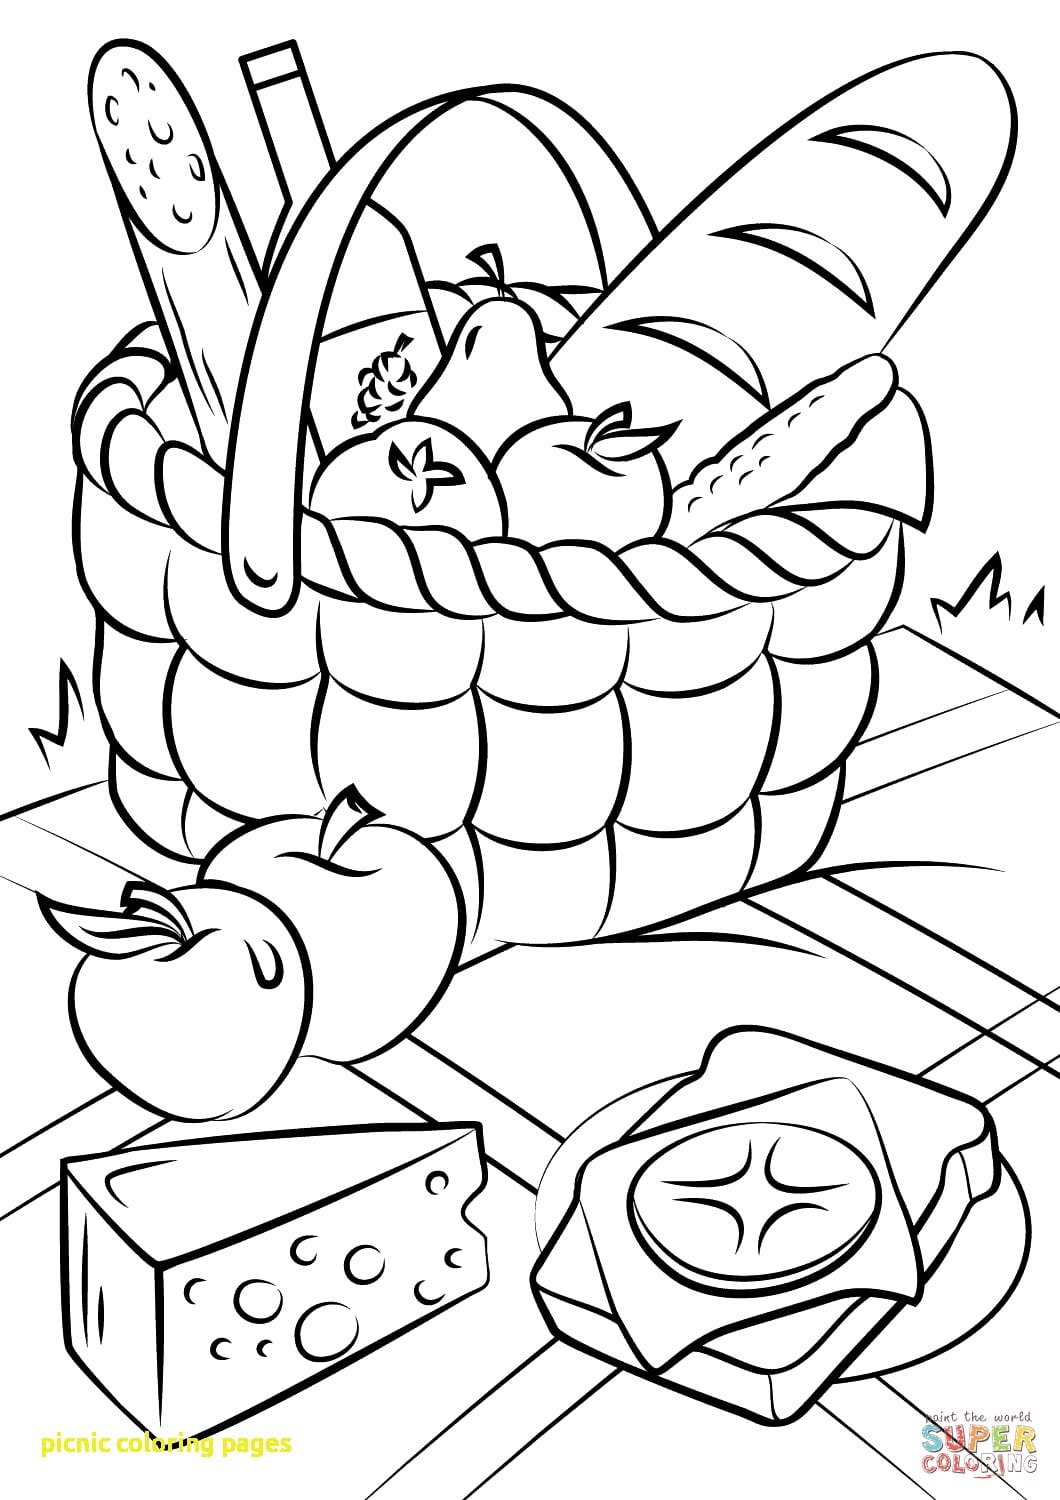 Picnic Coloring Pages Free Inside